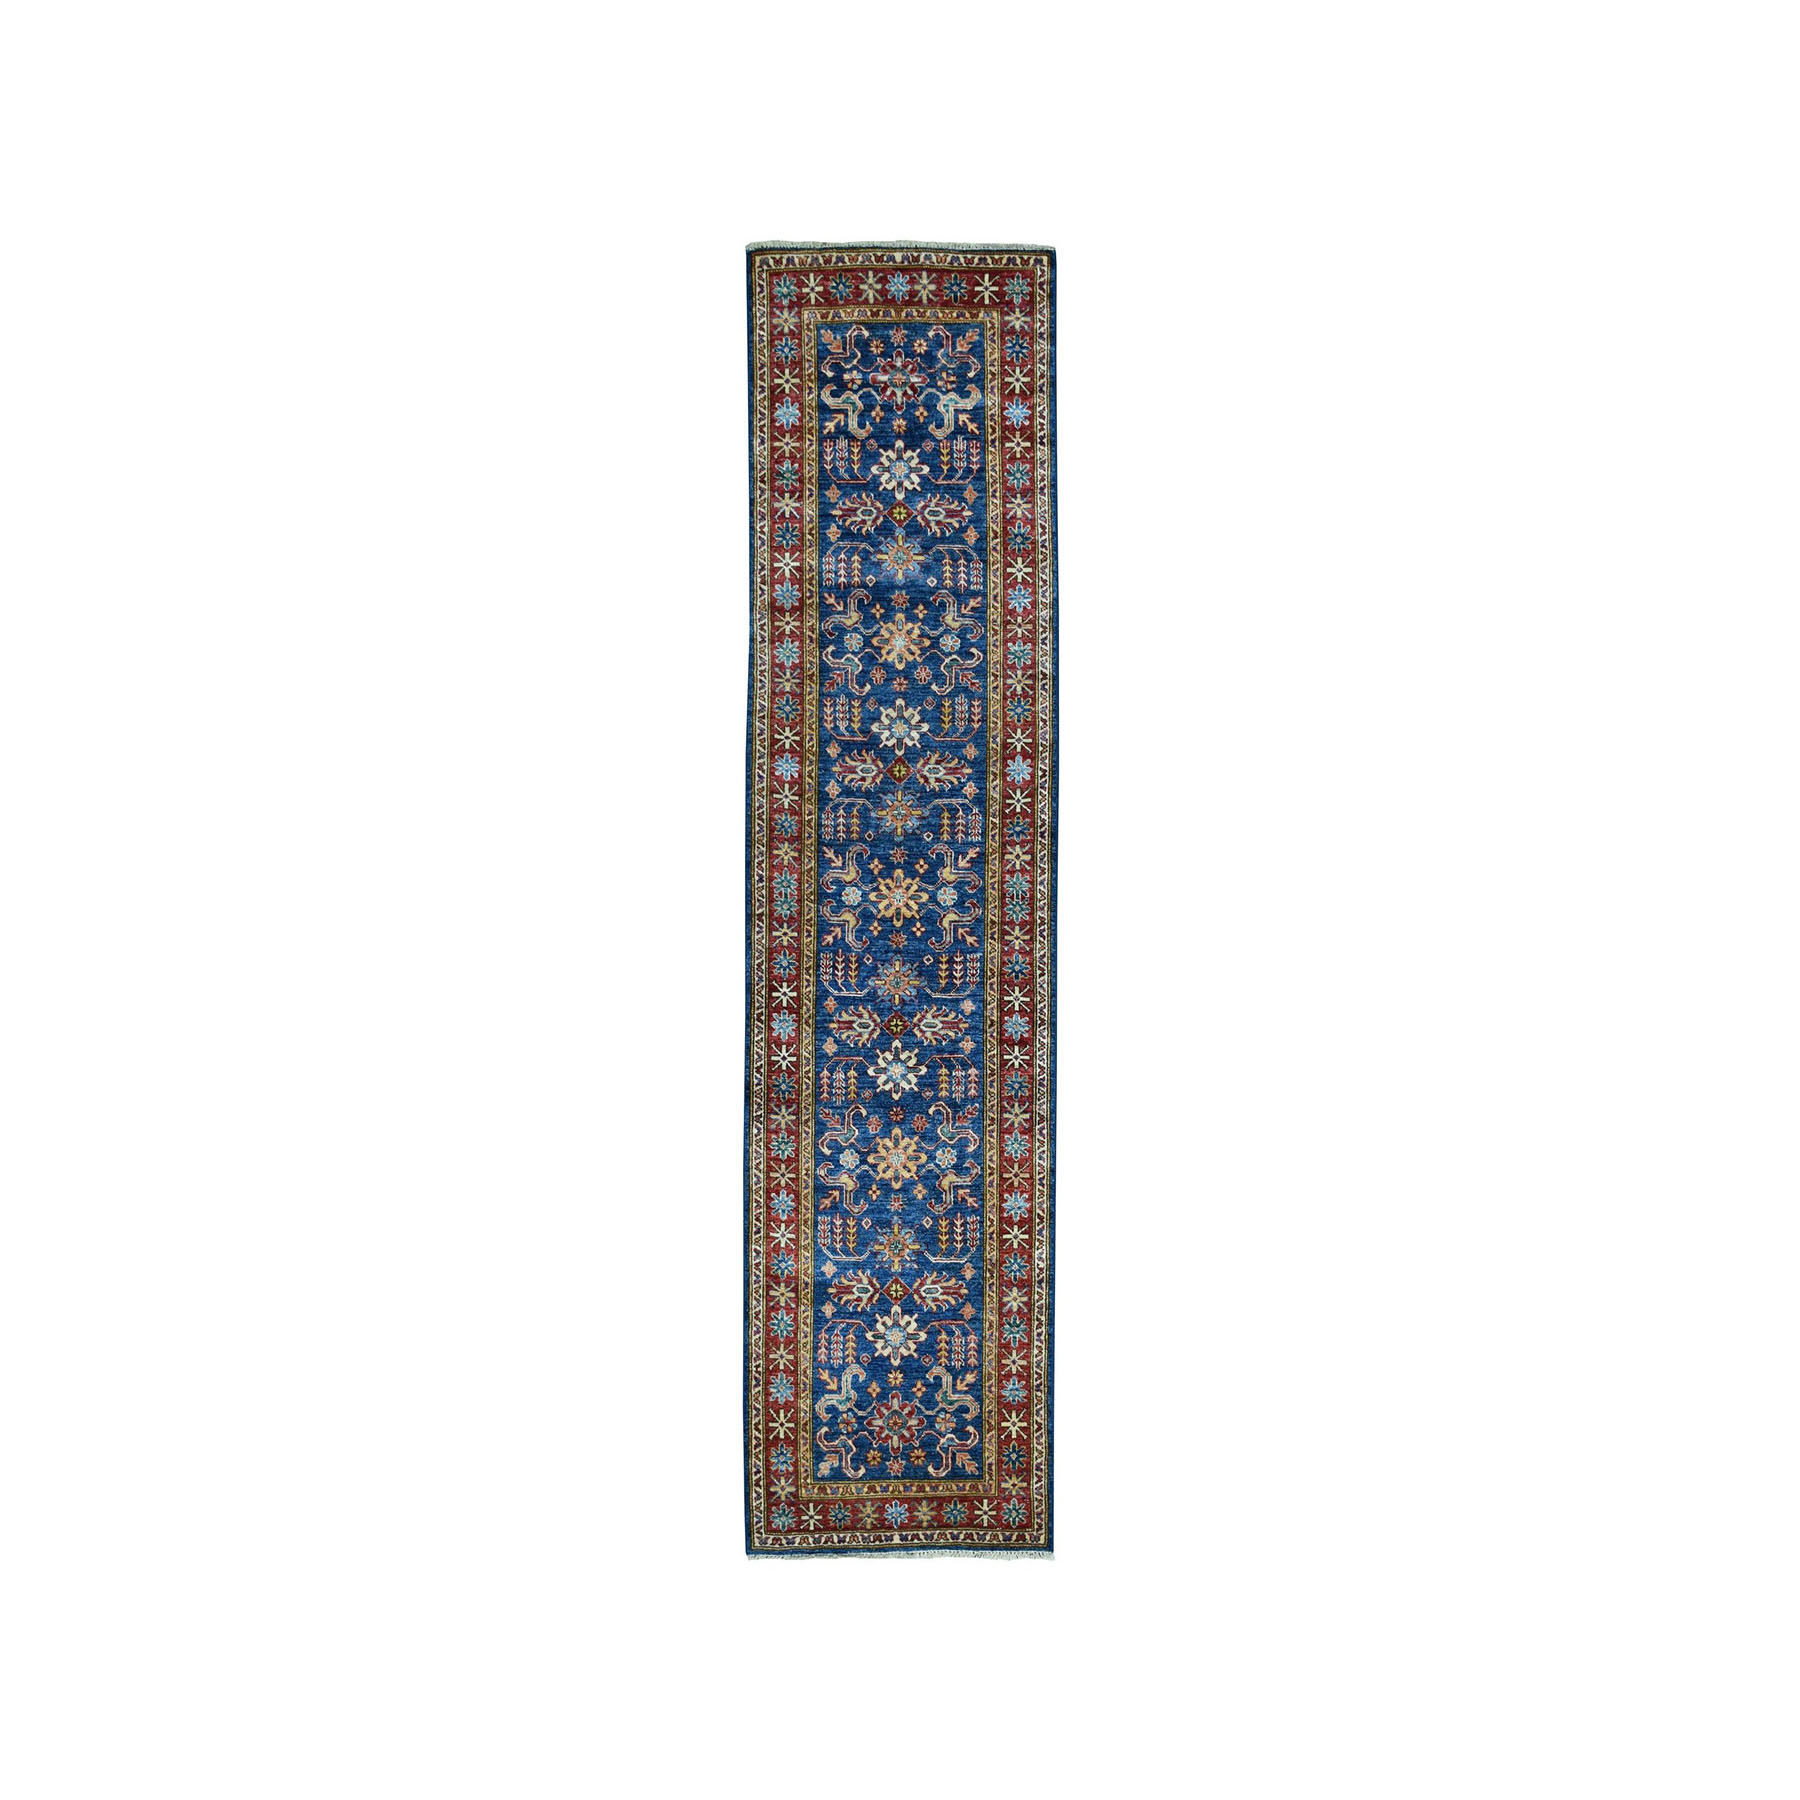 "2'6""X8'6"" Blue Super Kazak Geometric Design Pure Wool Hand-Knotted Runner Oriental Rug moae07ac"